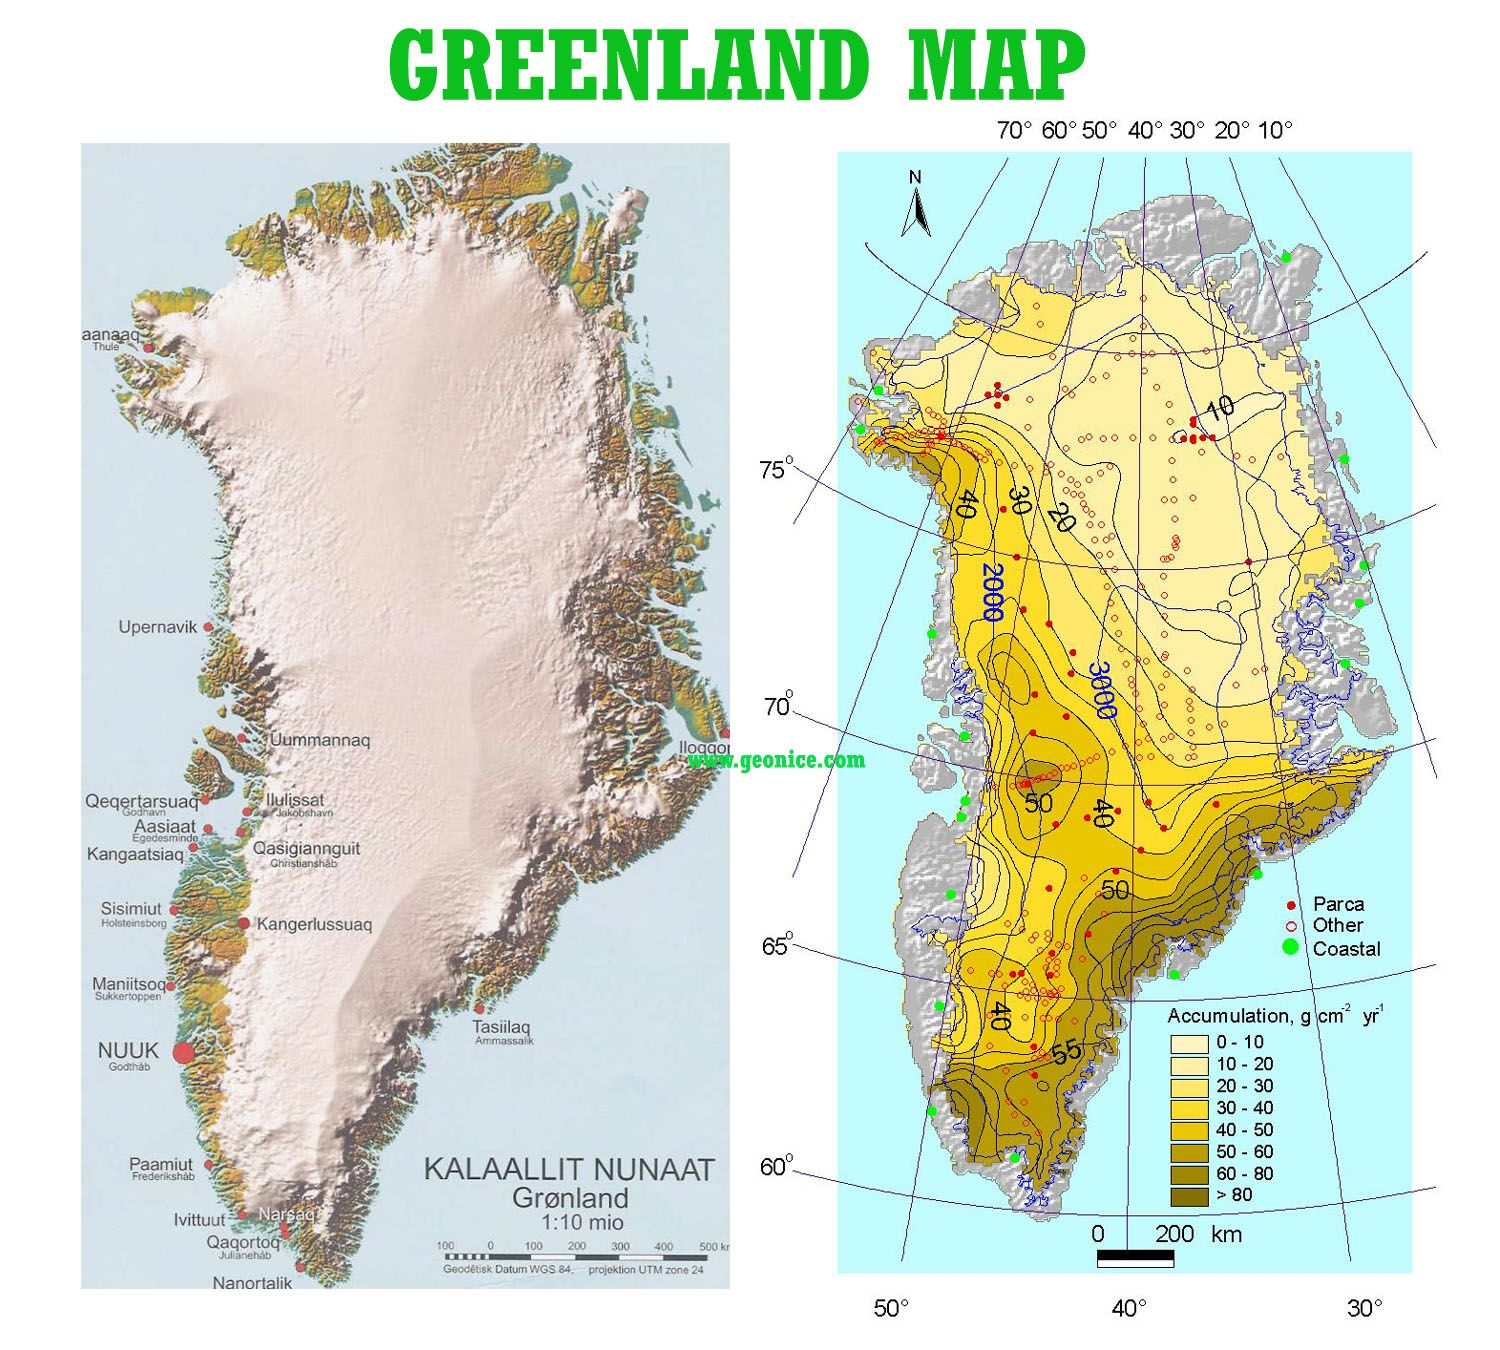 Greenland Topo/Map Travel | Greenland map, Map, Arctic